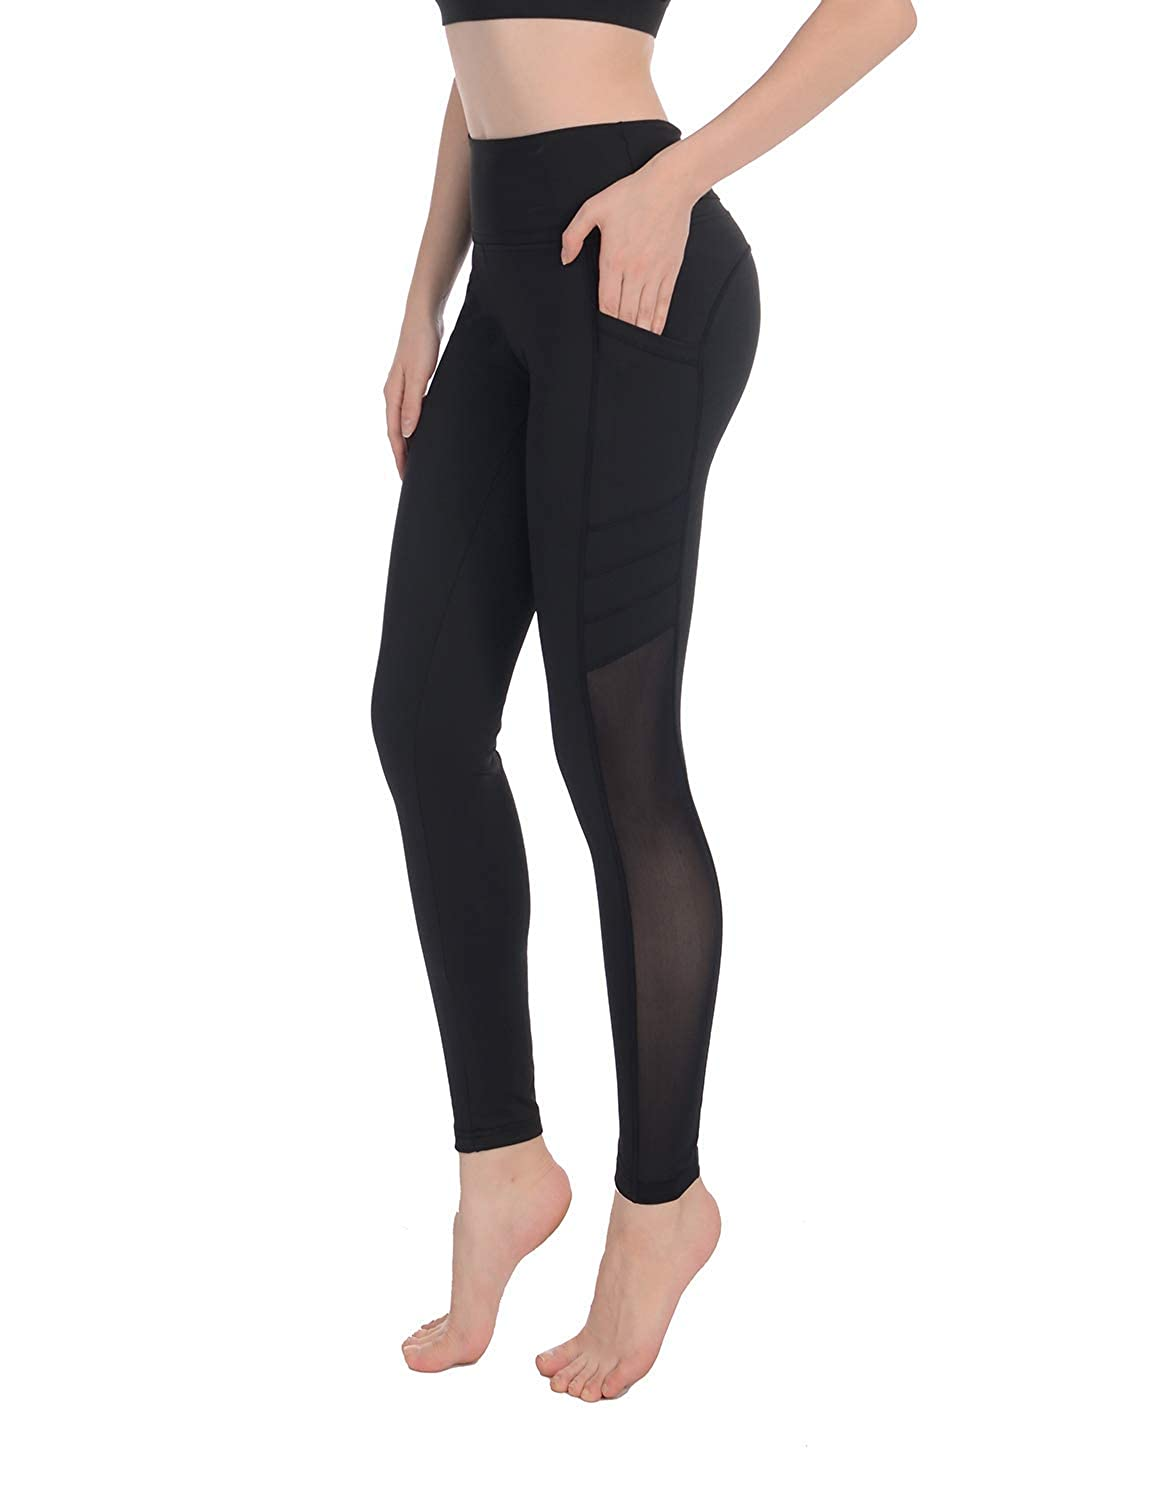 f310077fb6753 Amazon.com: Sylonway Women's High Waist Yoga Pants with Pockets & Mesh  Tummy Control Workout Running Leggings for Sports Fitness Gym: Clothing